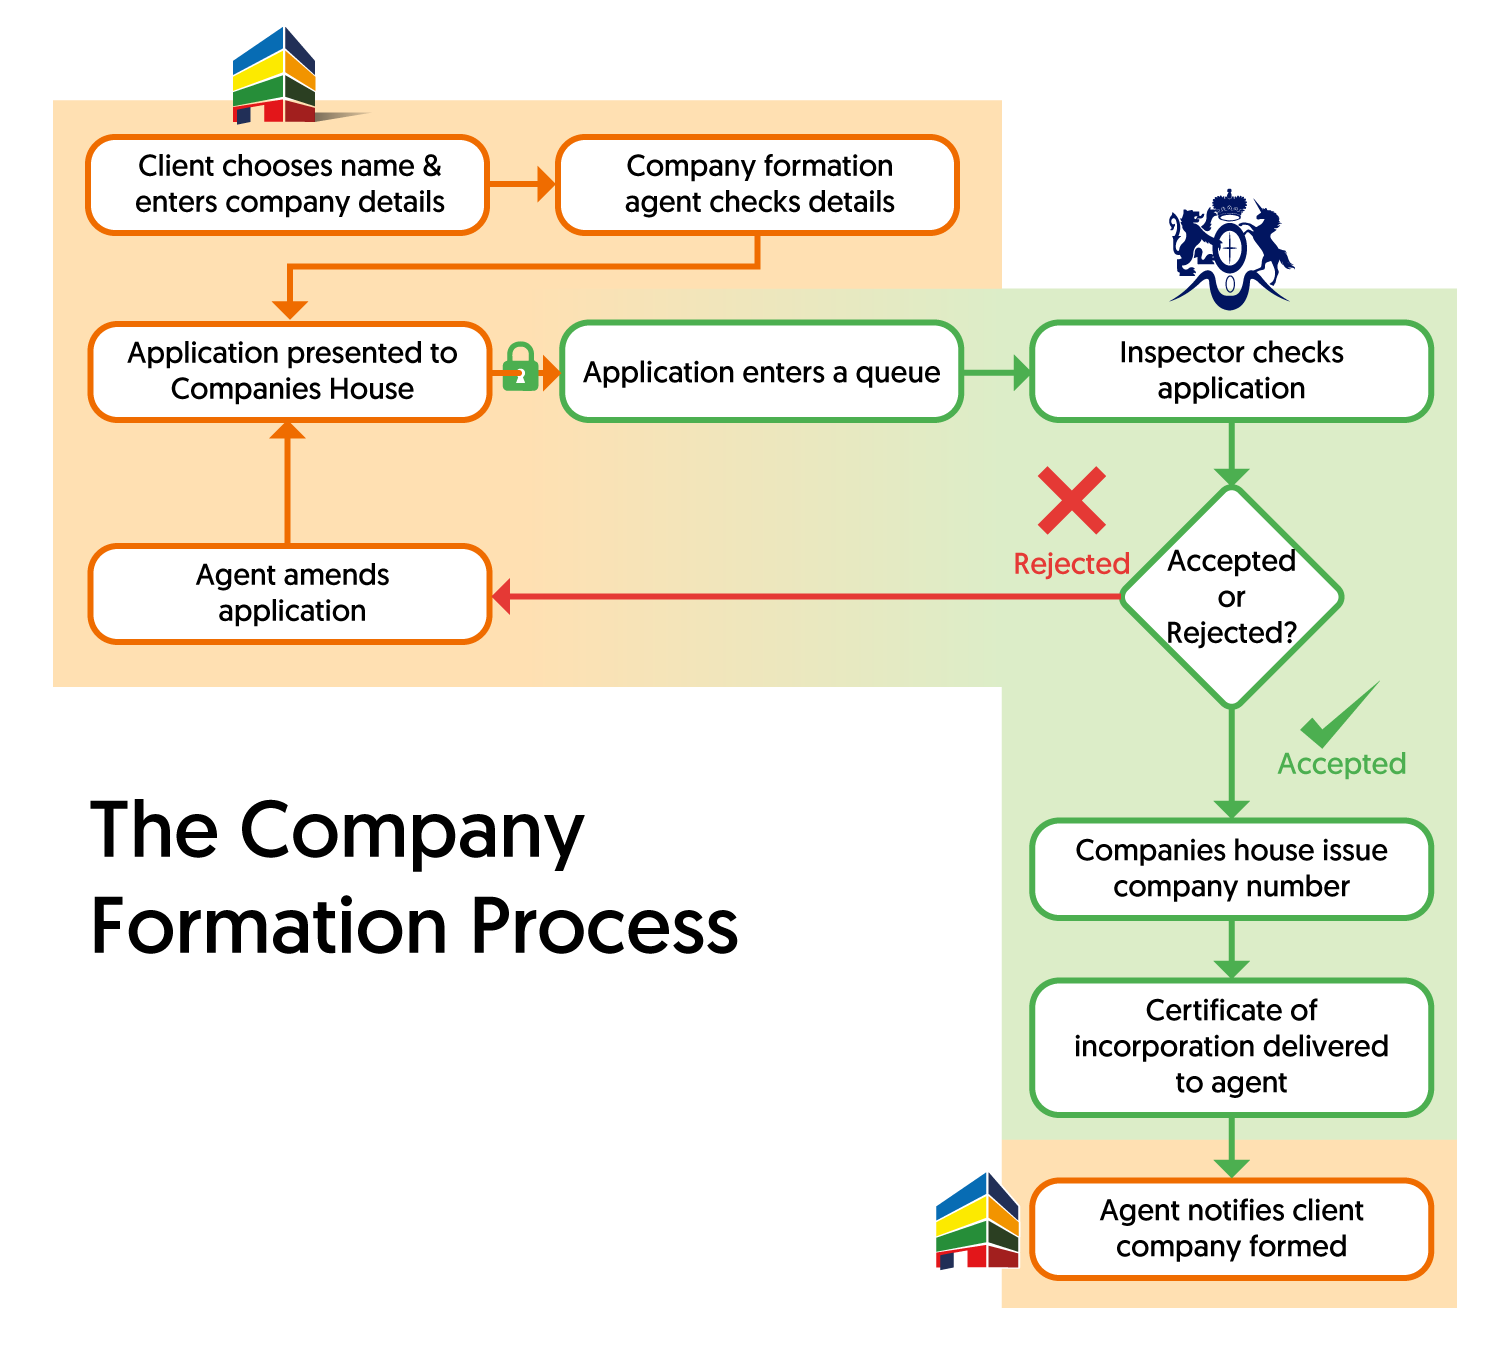 A flow diagram of the company registration process